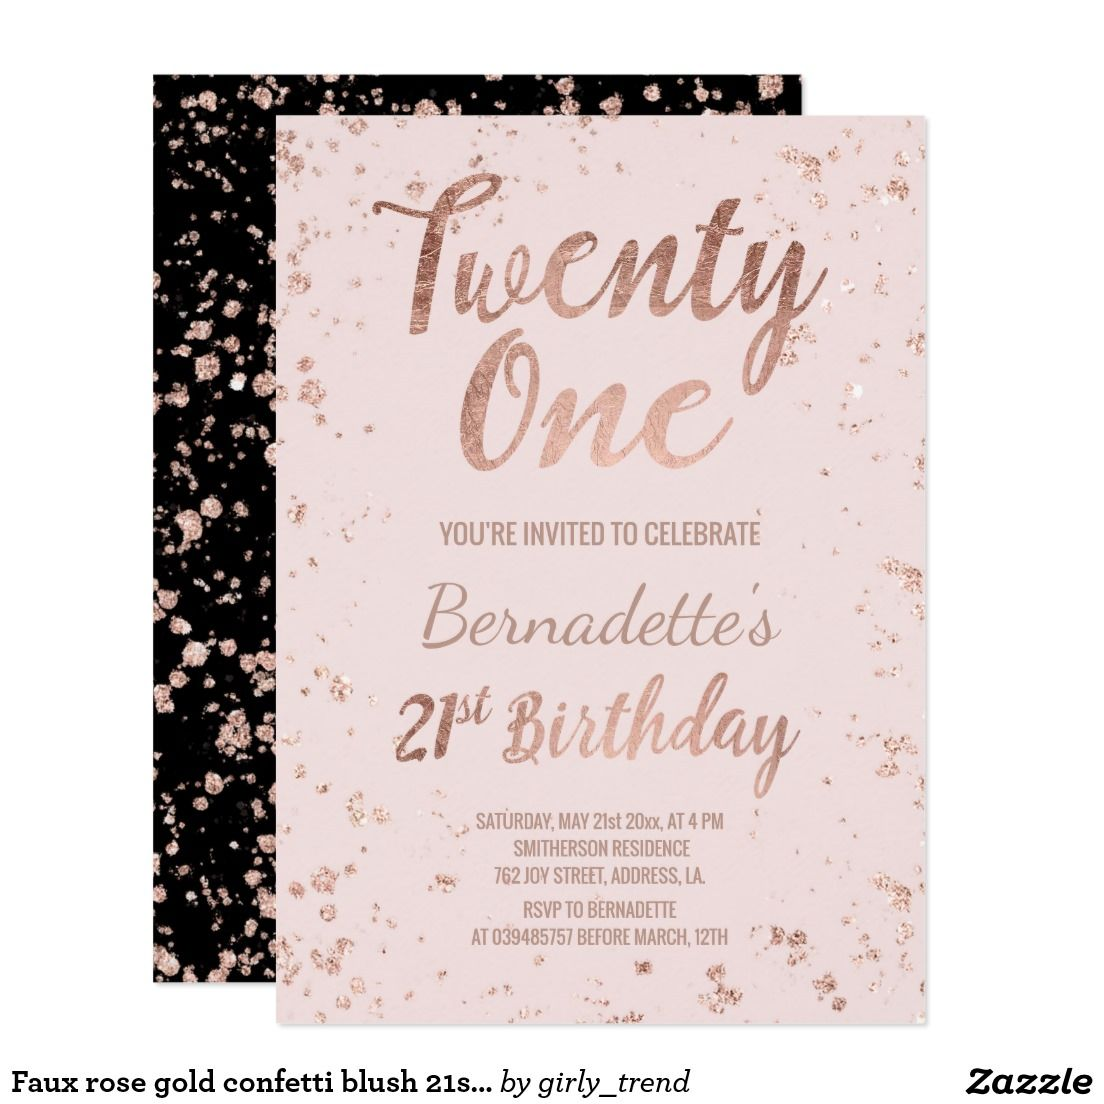 Faux Rose Gold Confetti Blush 21st Birthday Card Splatters Pink A Modern Party Invitation With